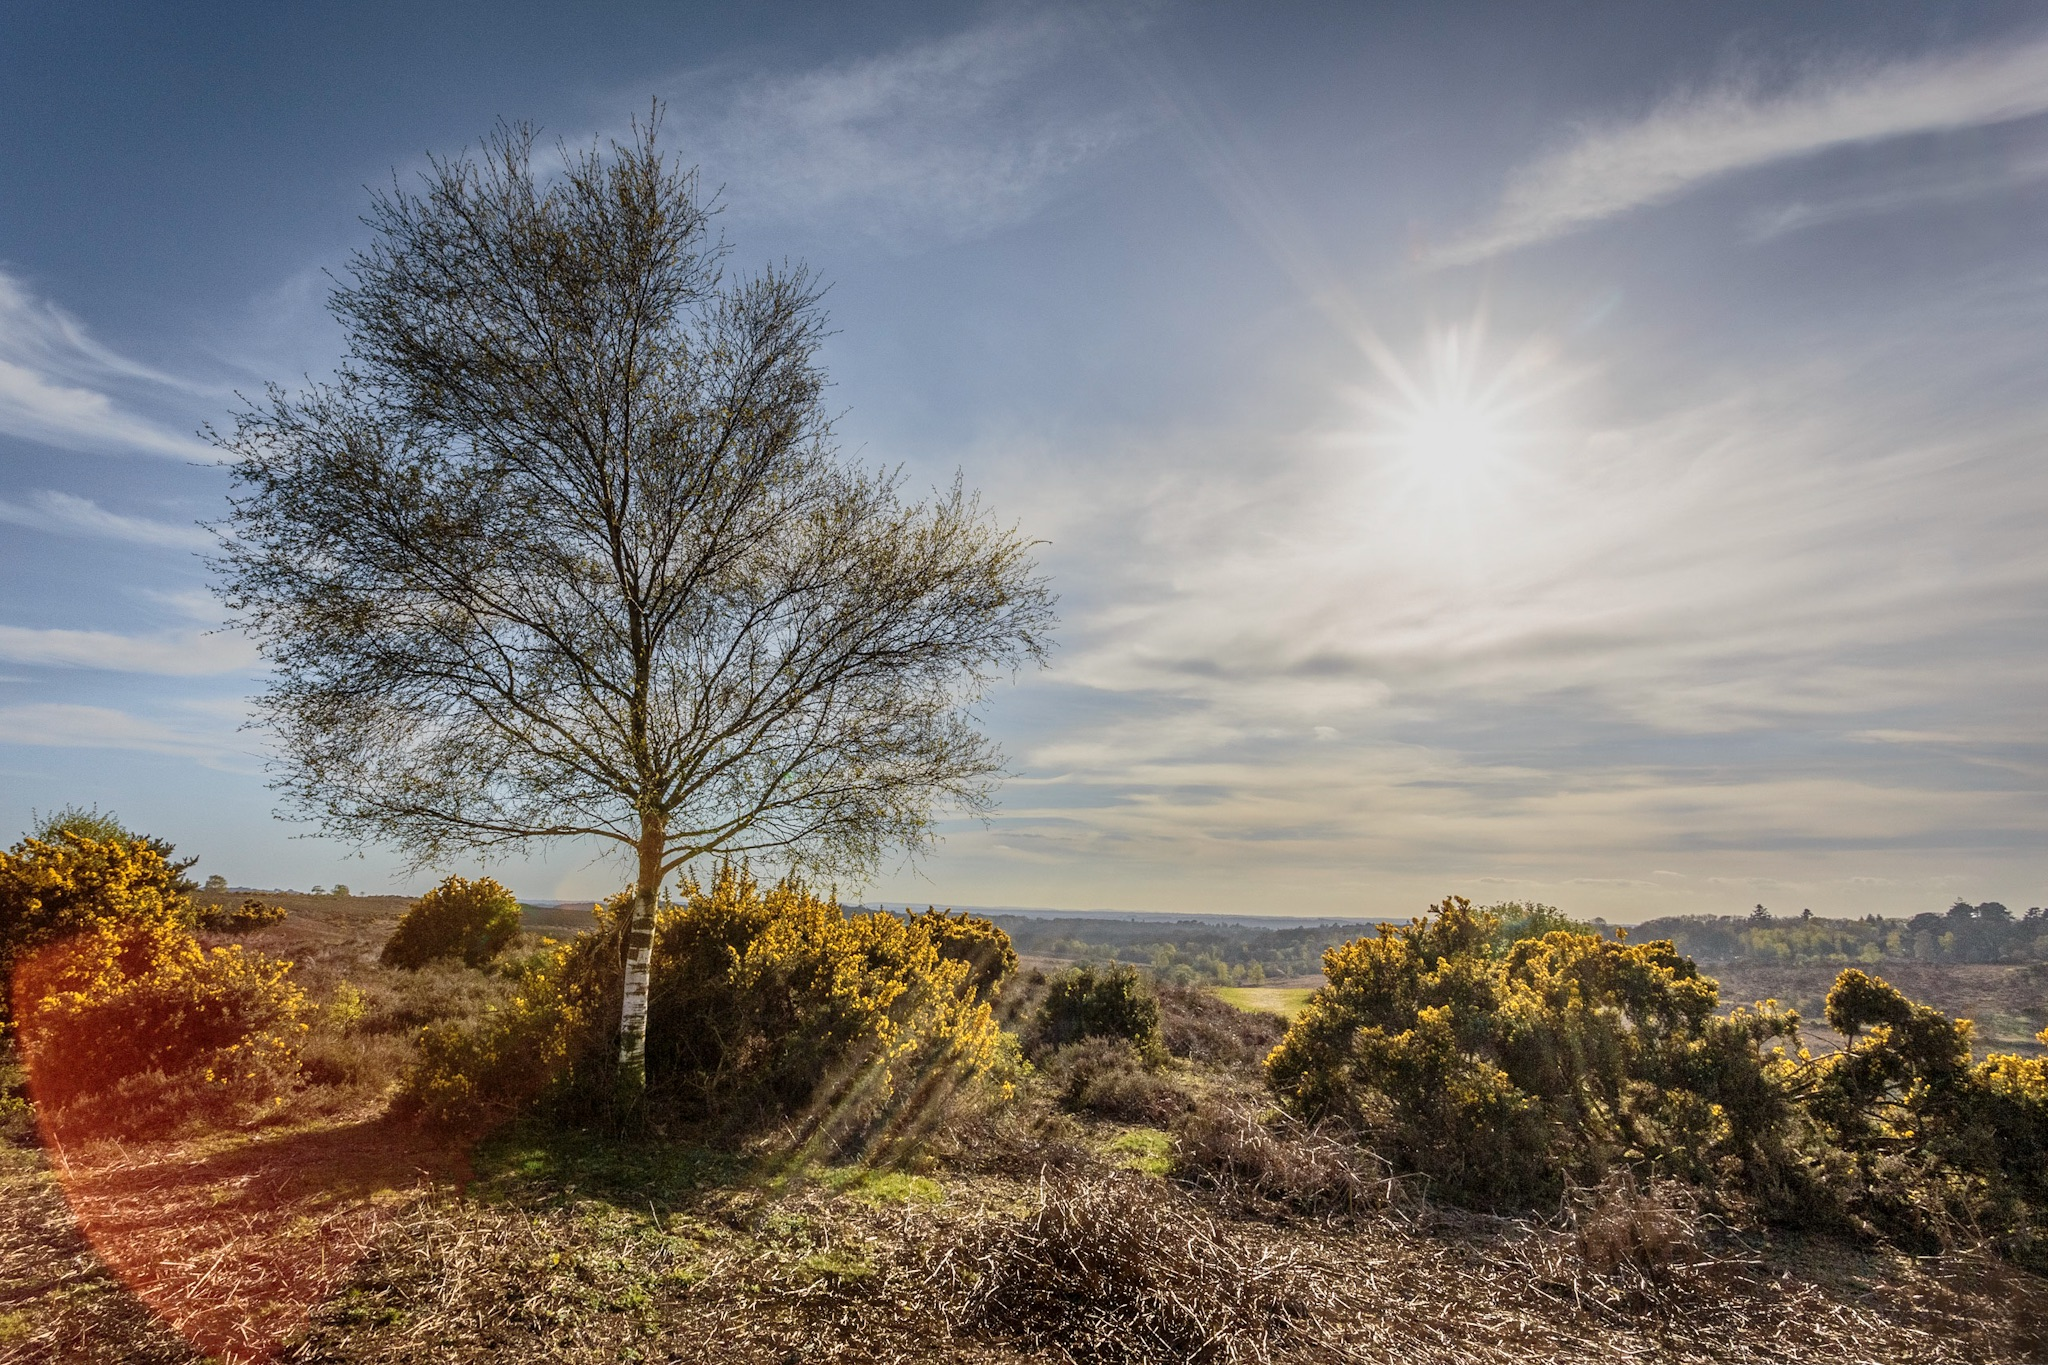 Landscape photography in Hampshire by Rick McEvoy